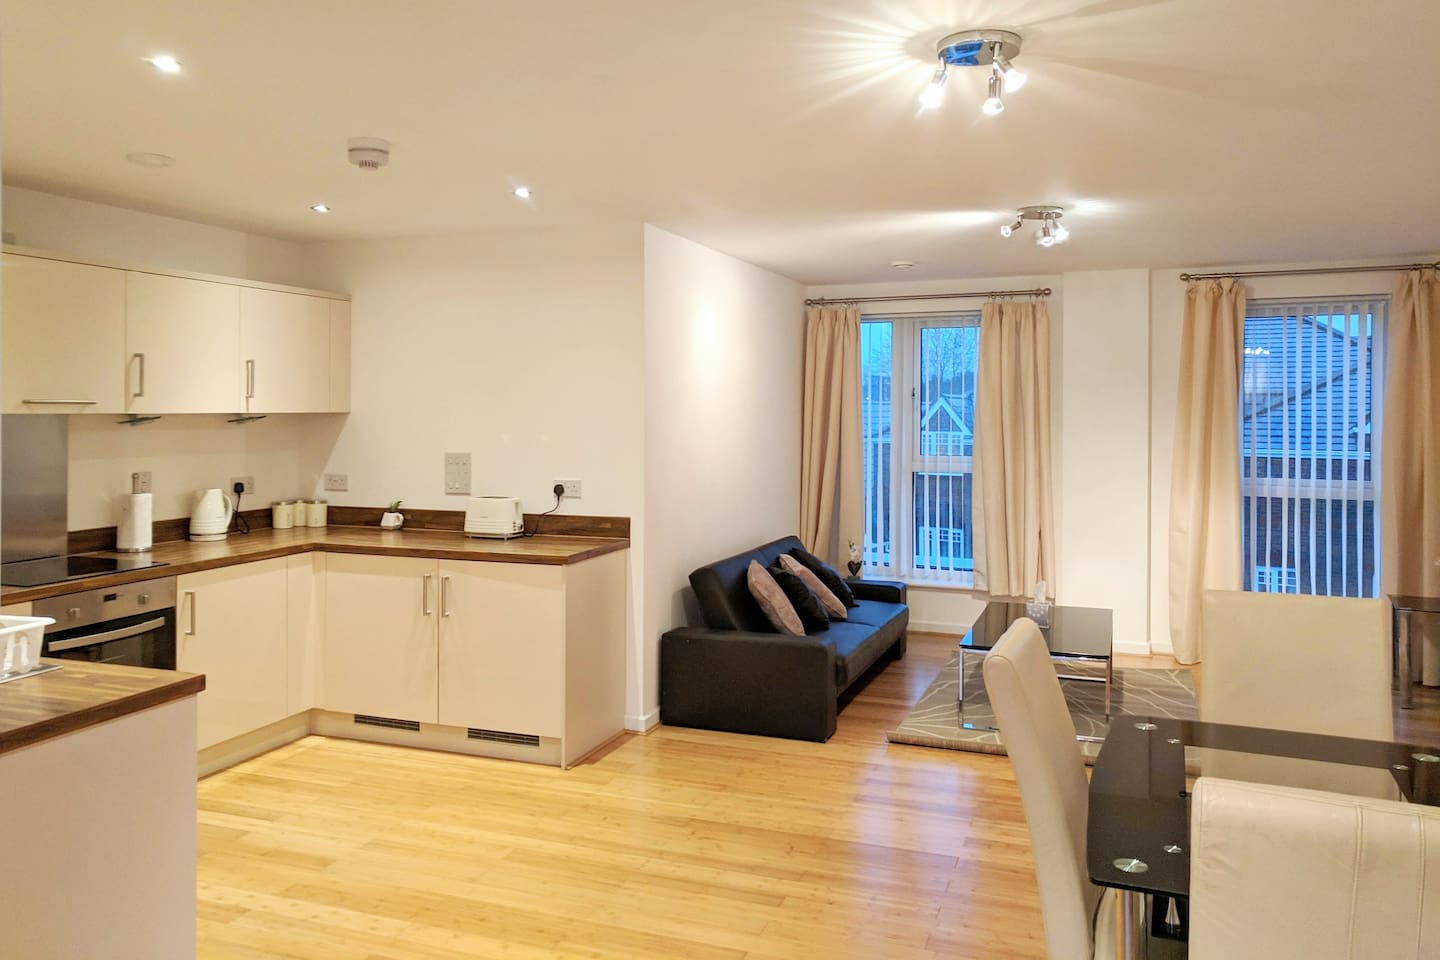 Plenty of dining and living space to call your own home